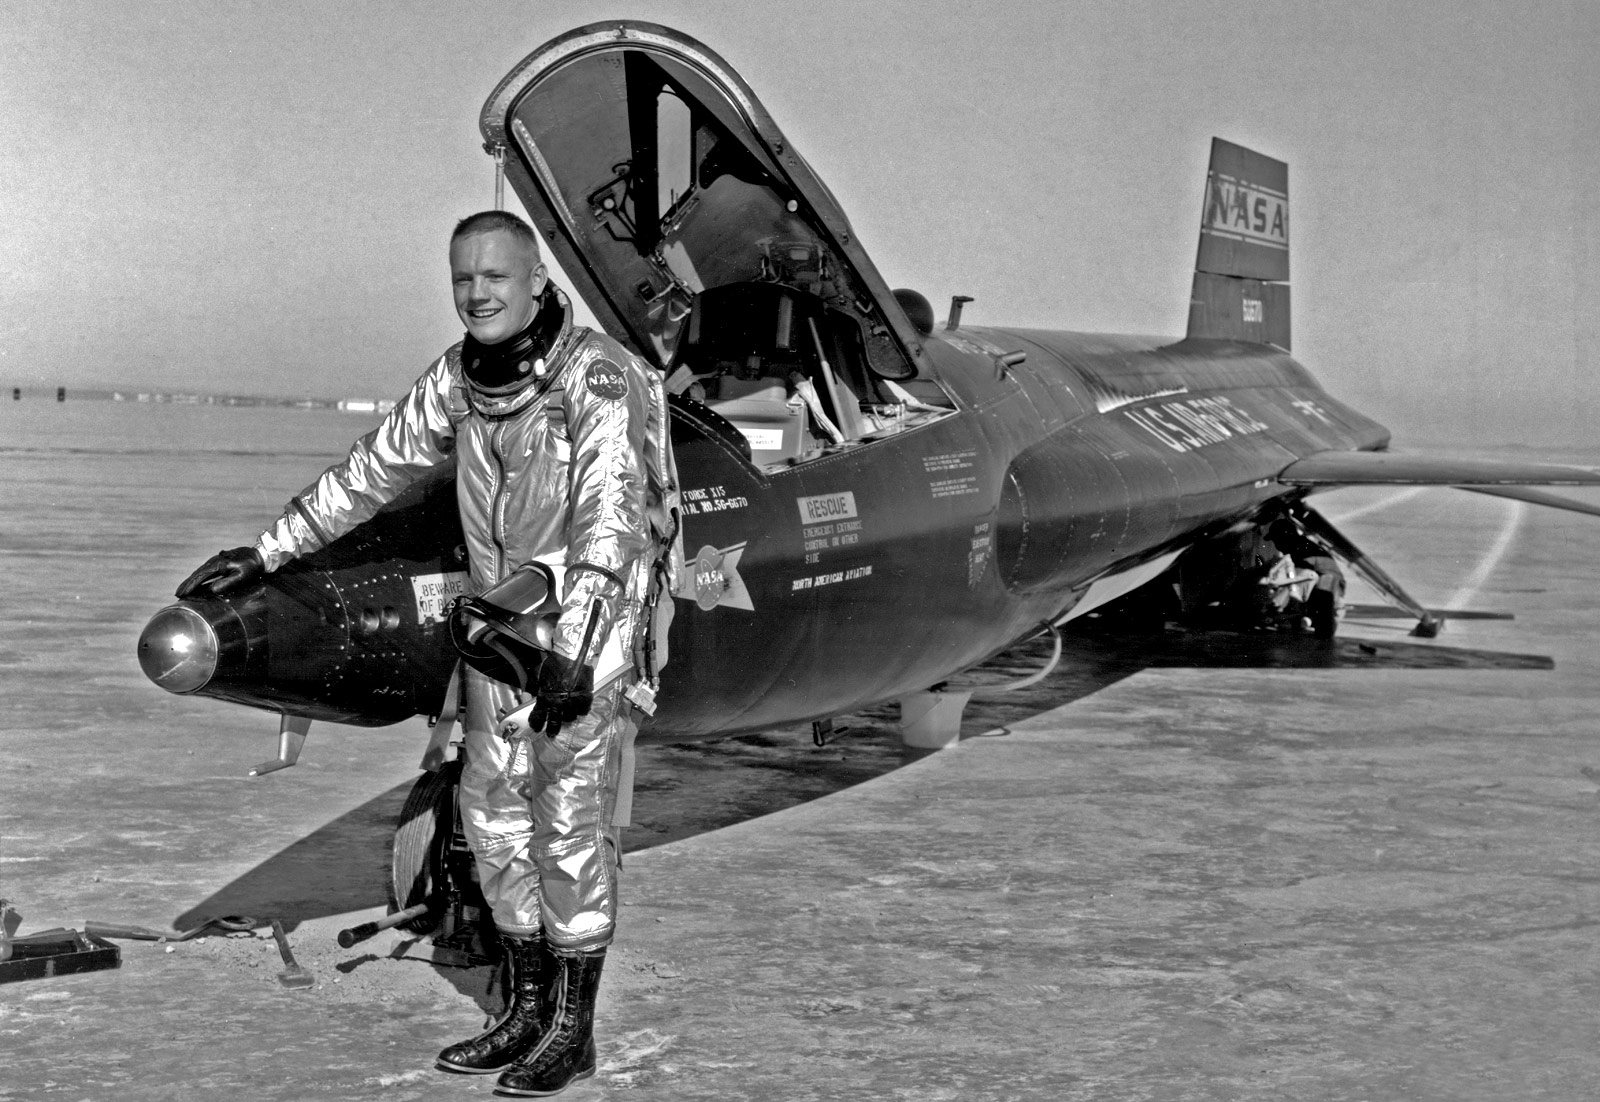 CoolPix - X Planes: Neil Armstrong And The X-15 In 1960 ...